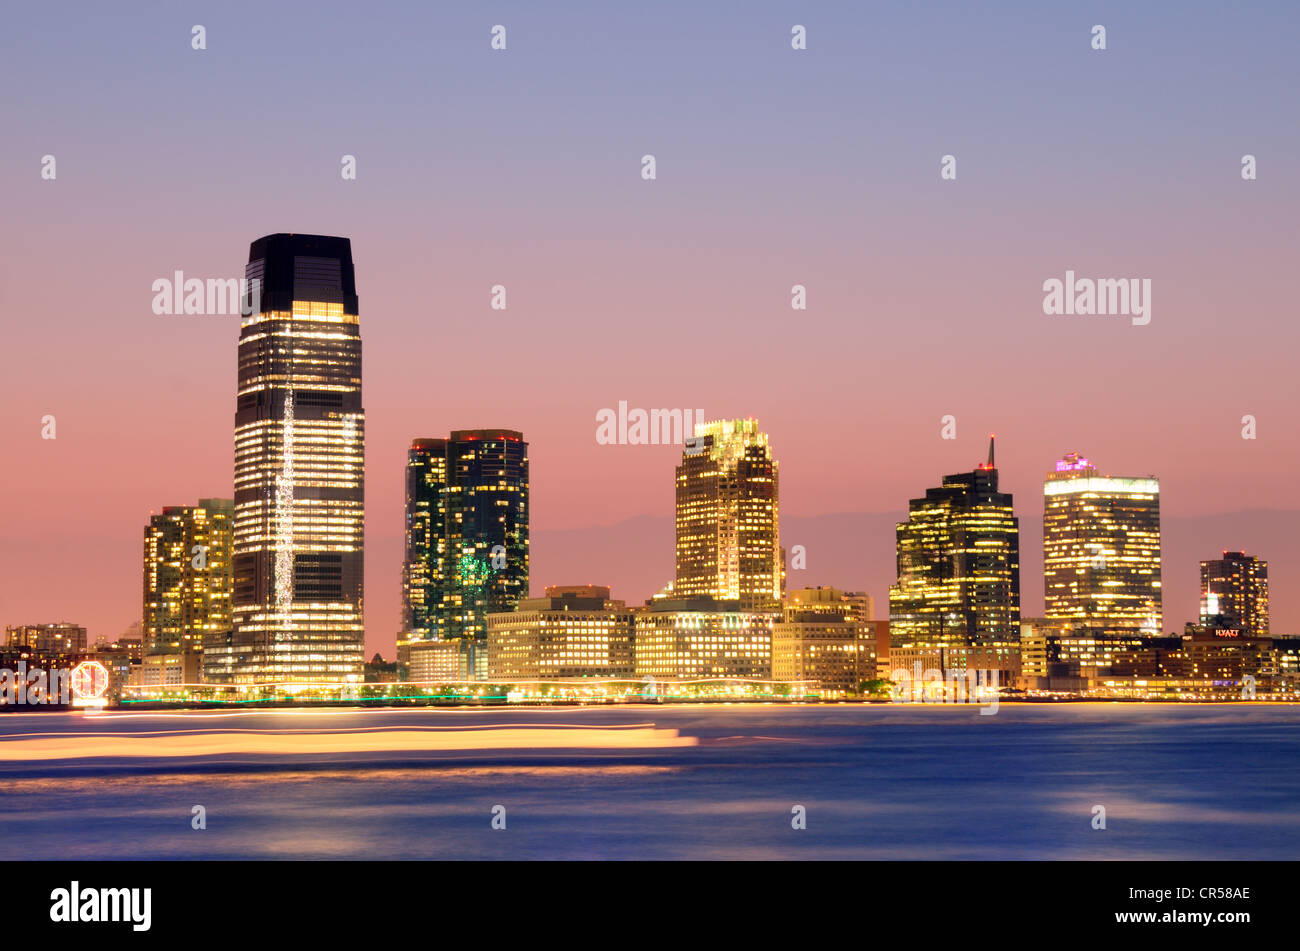 Austauschplatz in Jersey City, New Jersey, USA. Stockbild